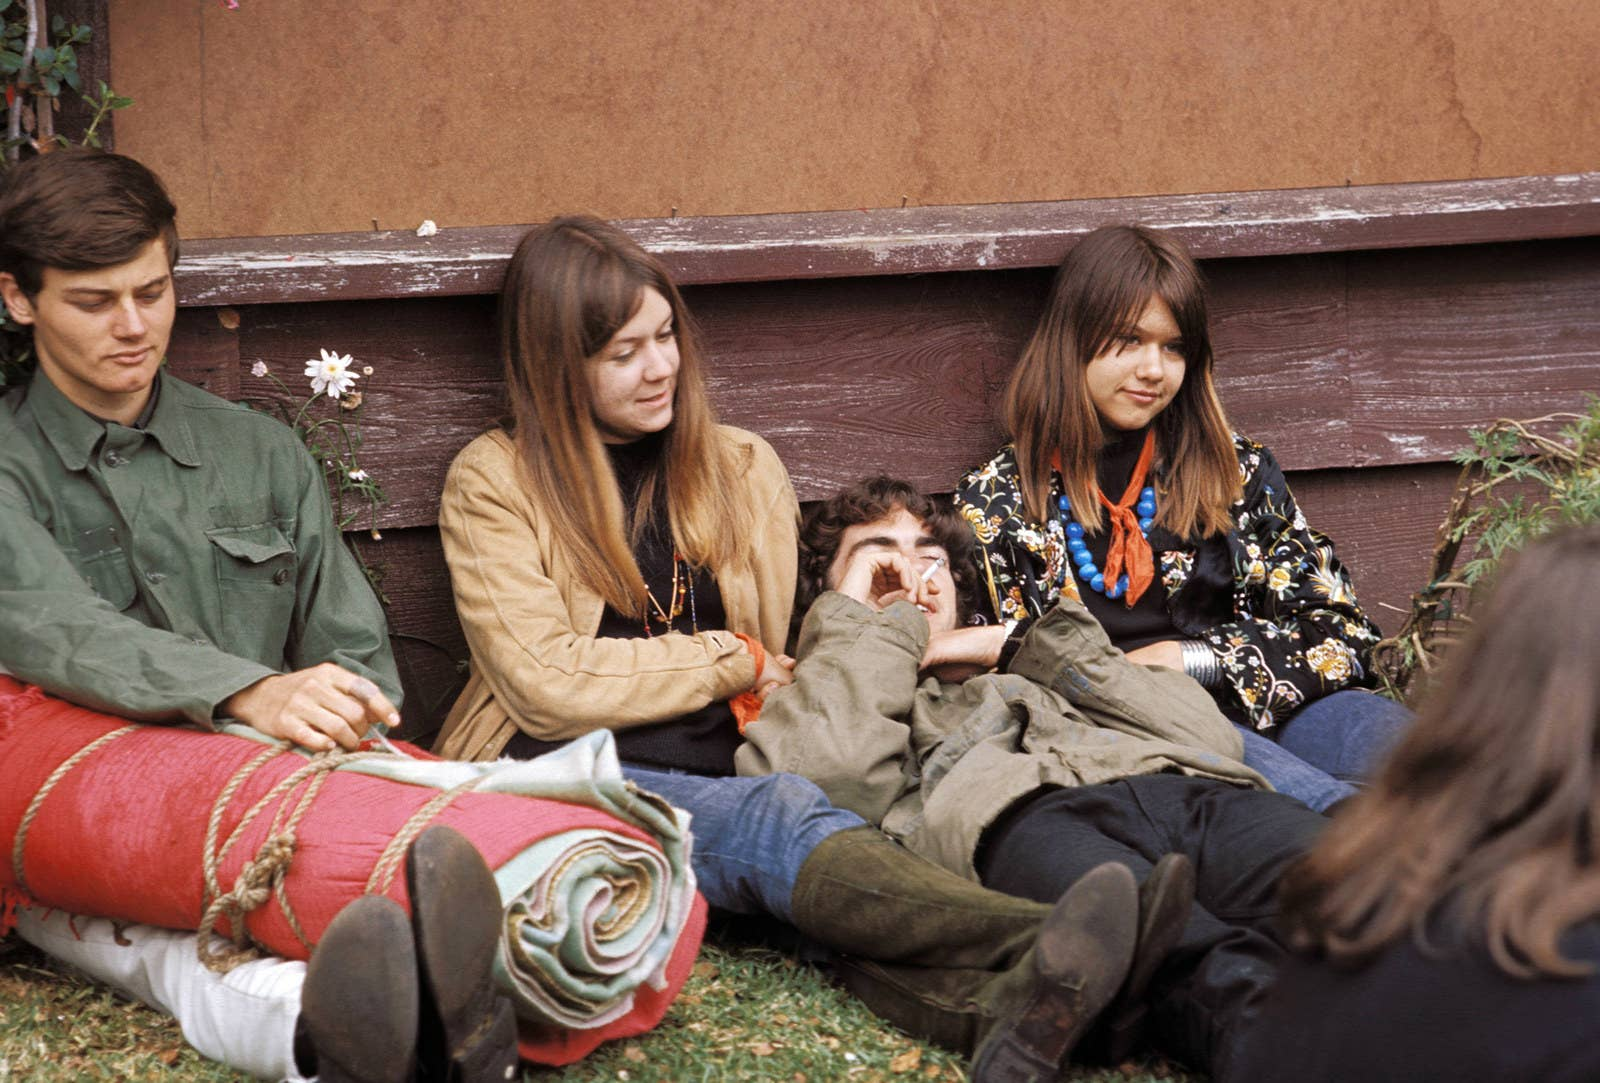 A group of hippies hang out during the Monterey Pop Festival.